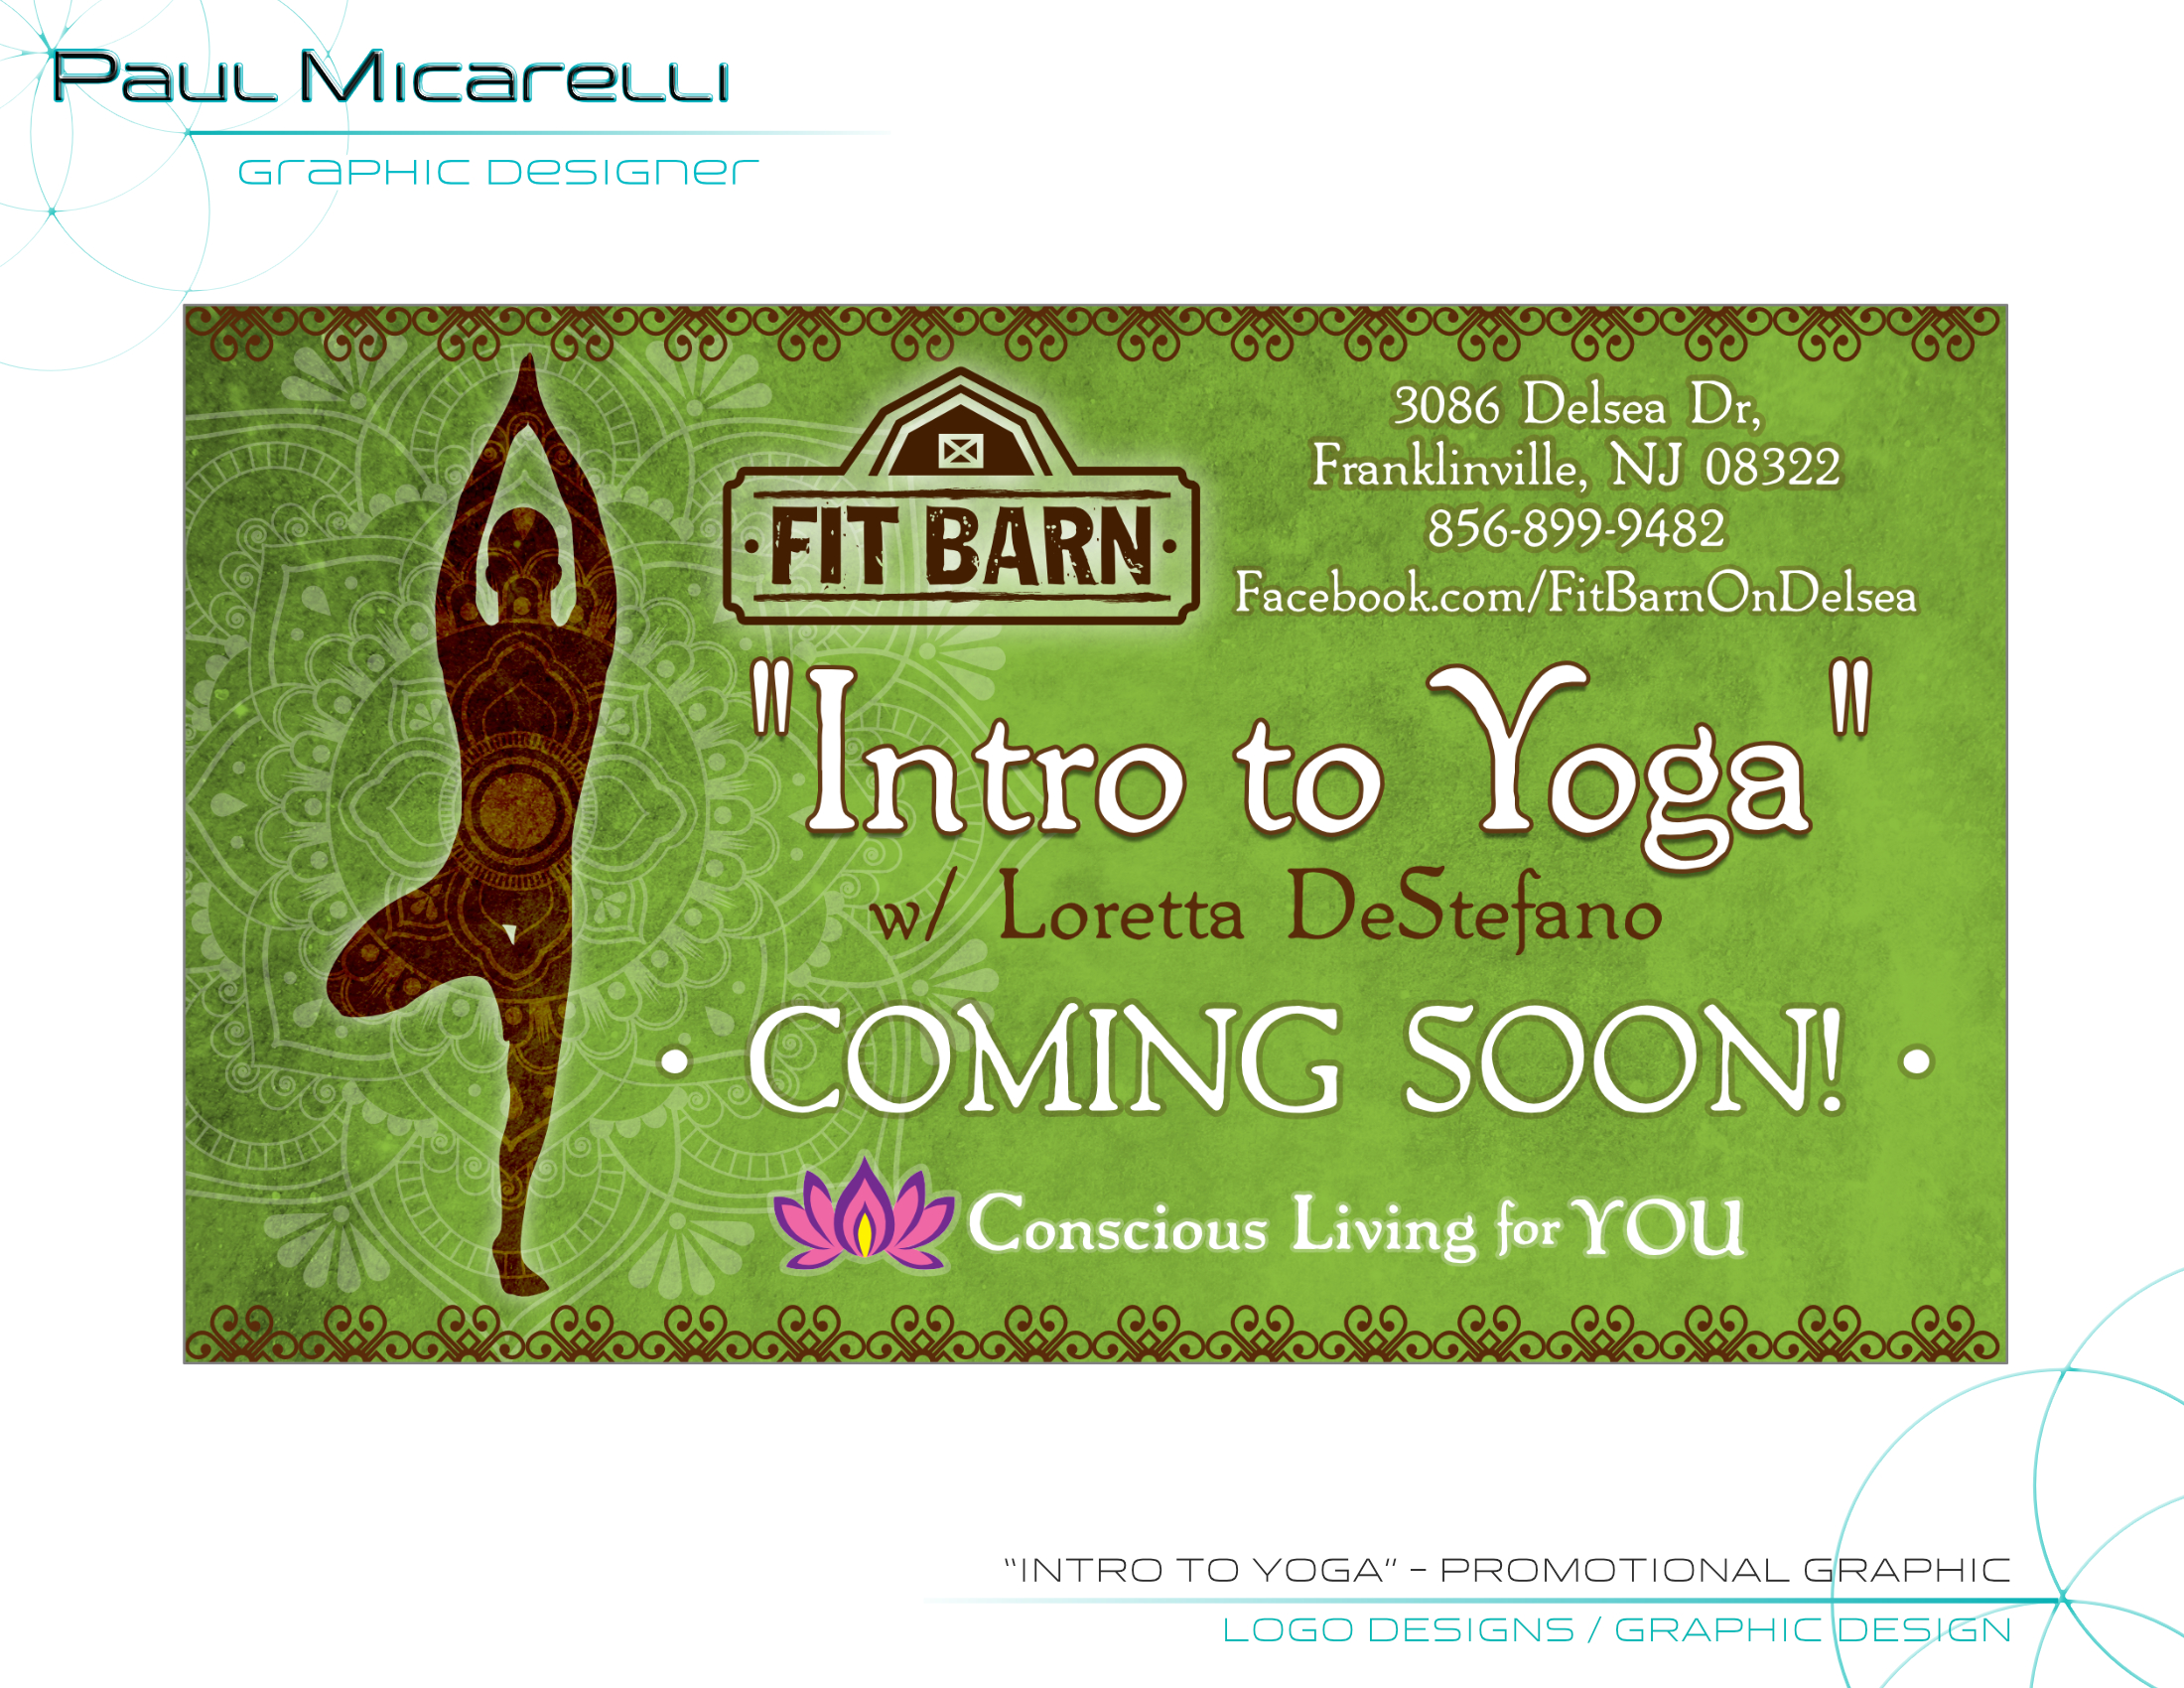 Paul-Micarelli-Intro to Yoga-Promo